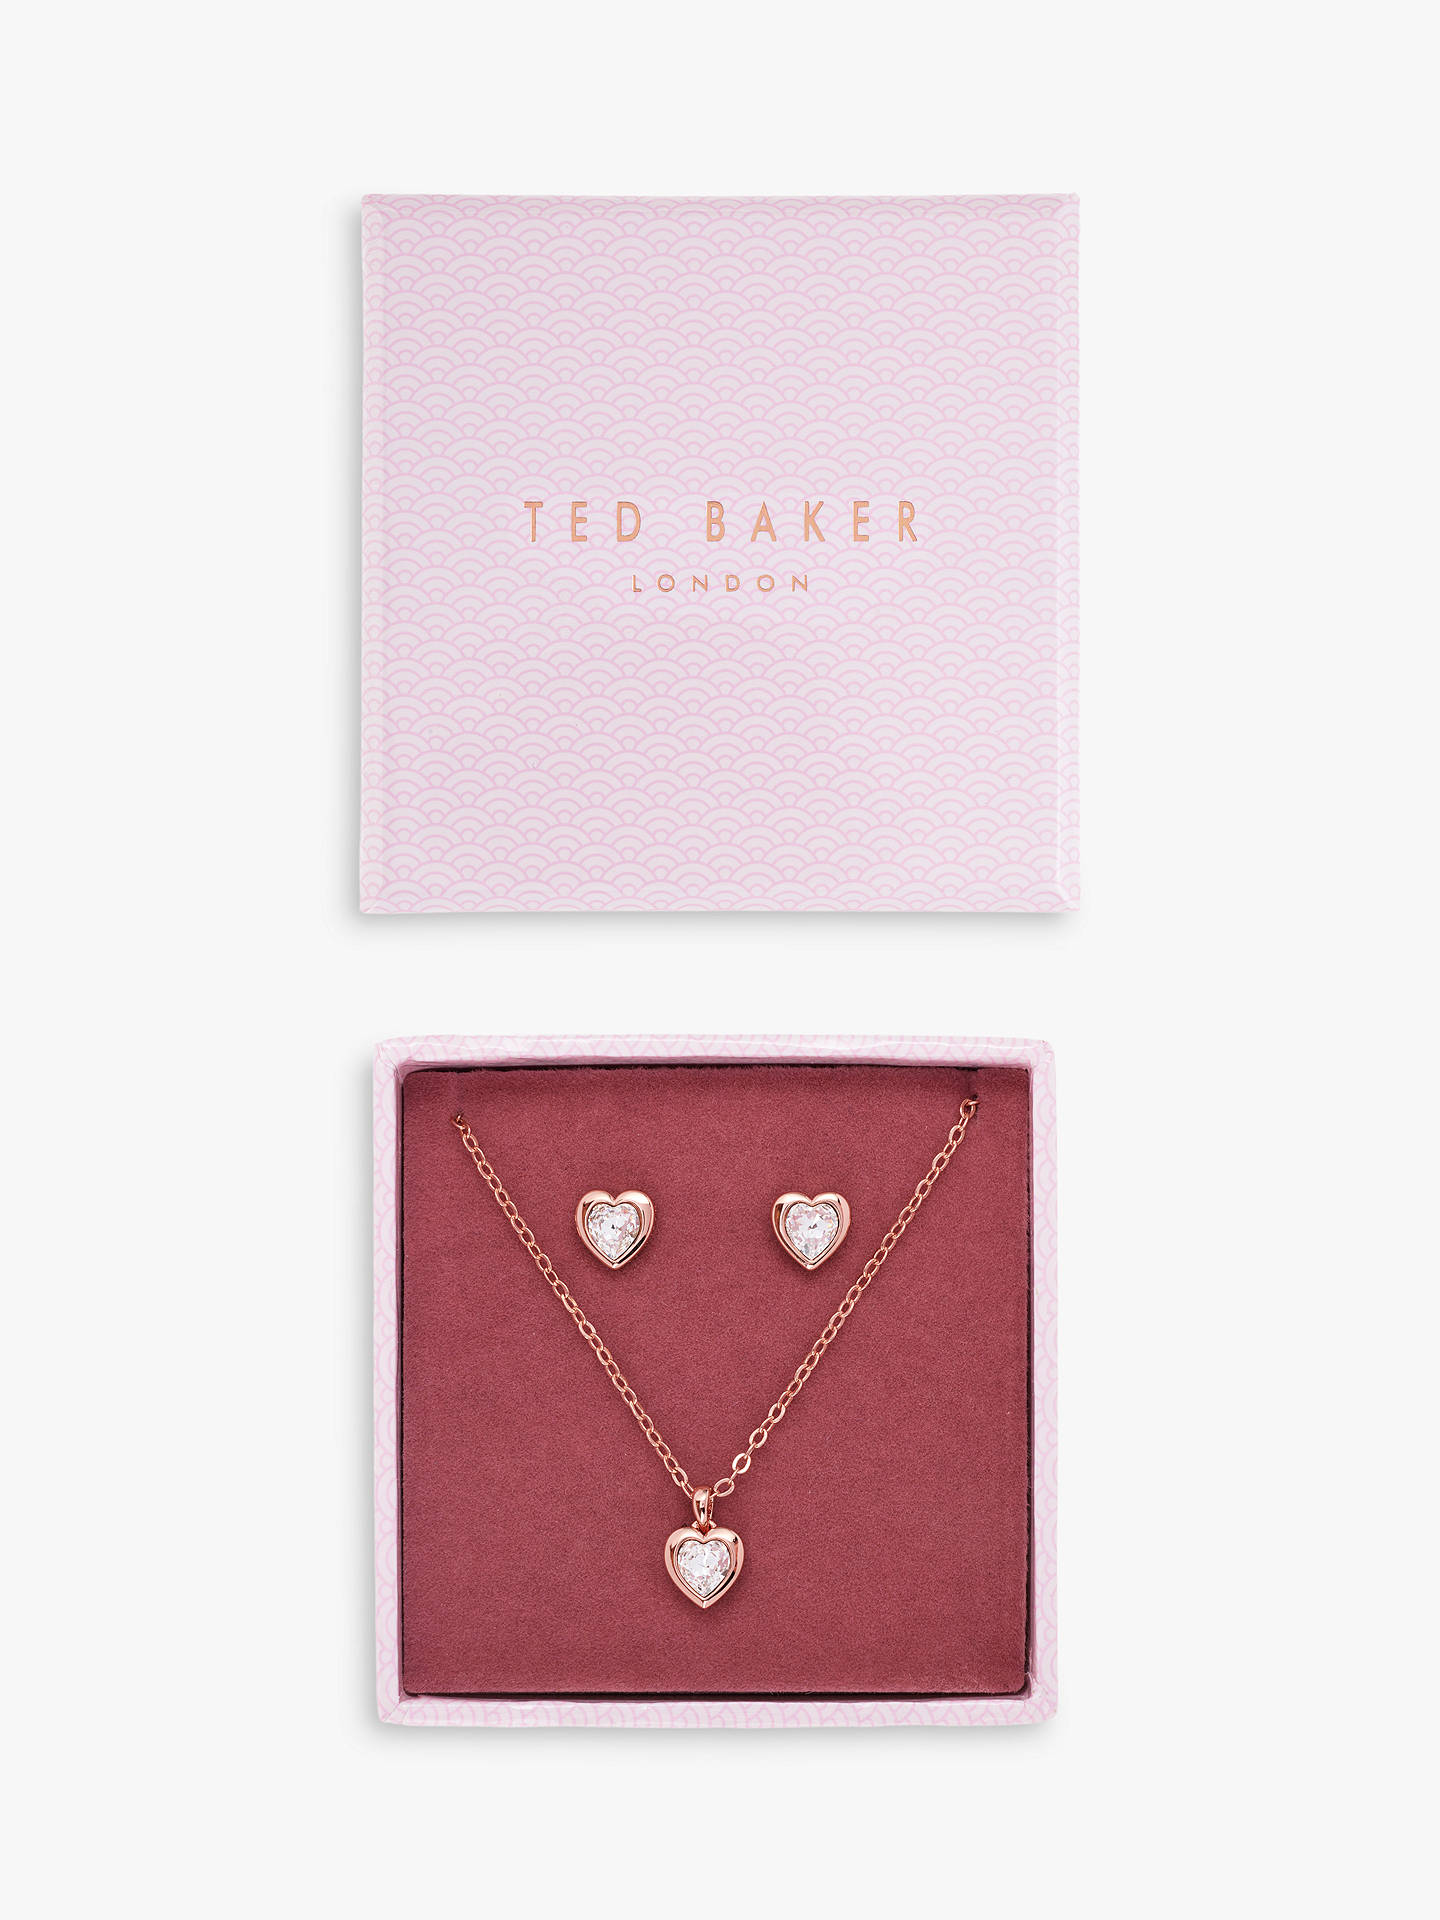 86785d9f225125 Buy Ted Baker Swarovski Crystal Heart Pendant Necklace and Stud Earrings  Jewellery Gift Set